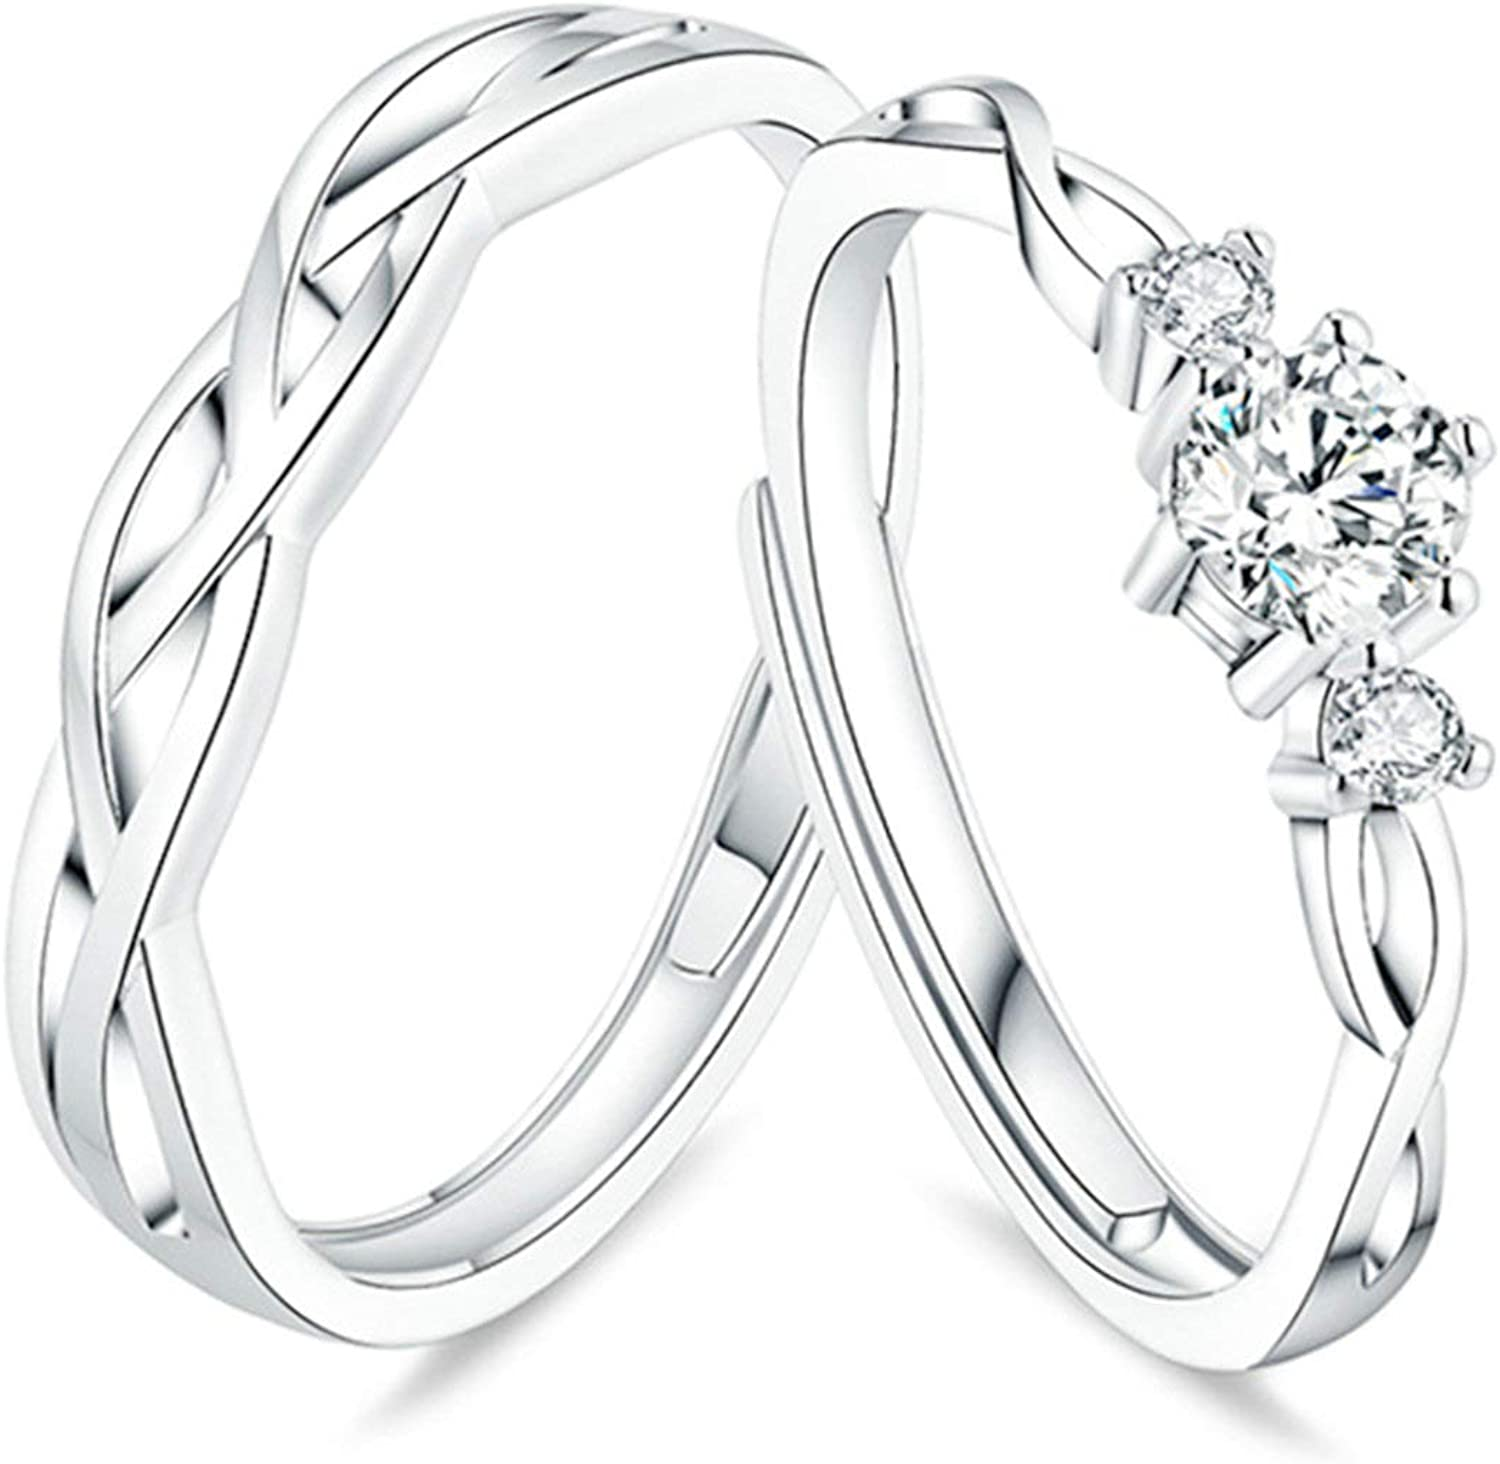 KnSam Matching Rings for Couples 925 Sales sale Her His Silver Sterling and San Diego Mall